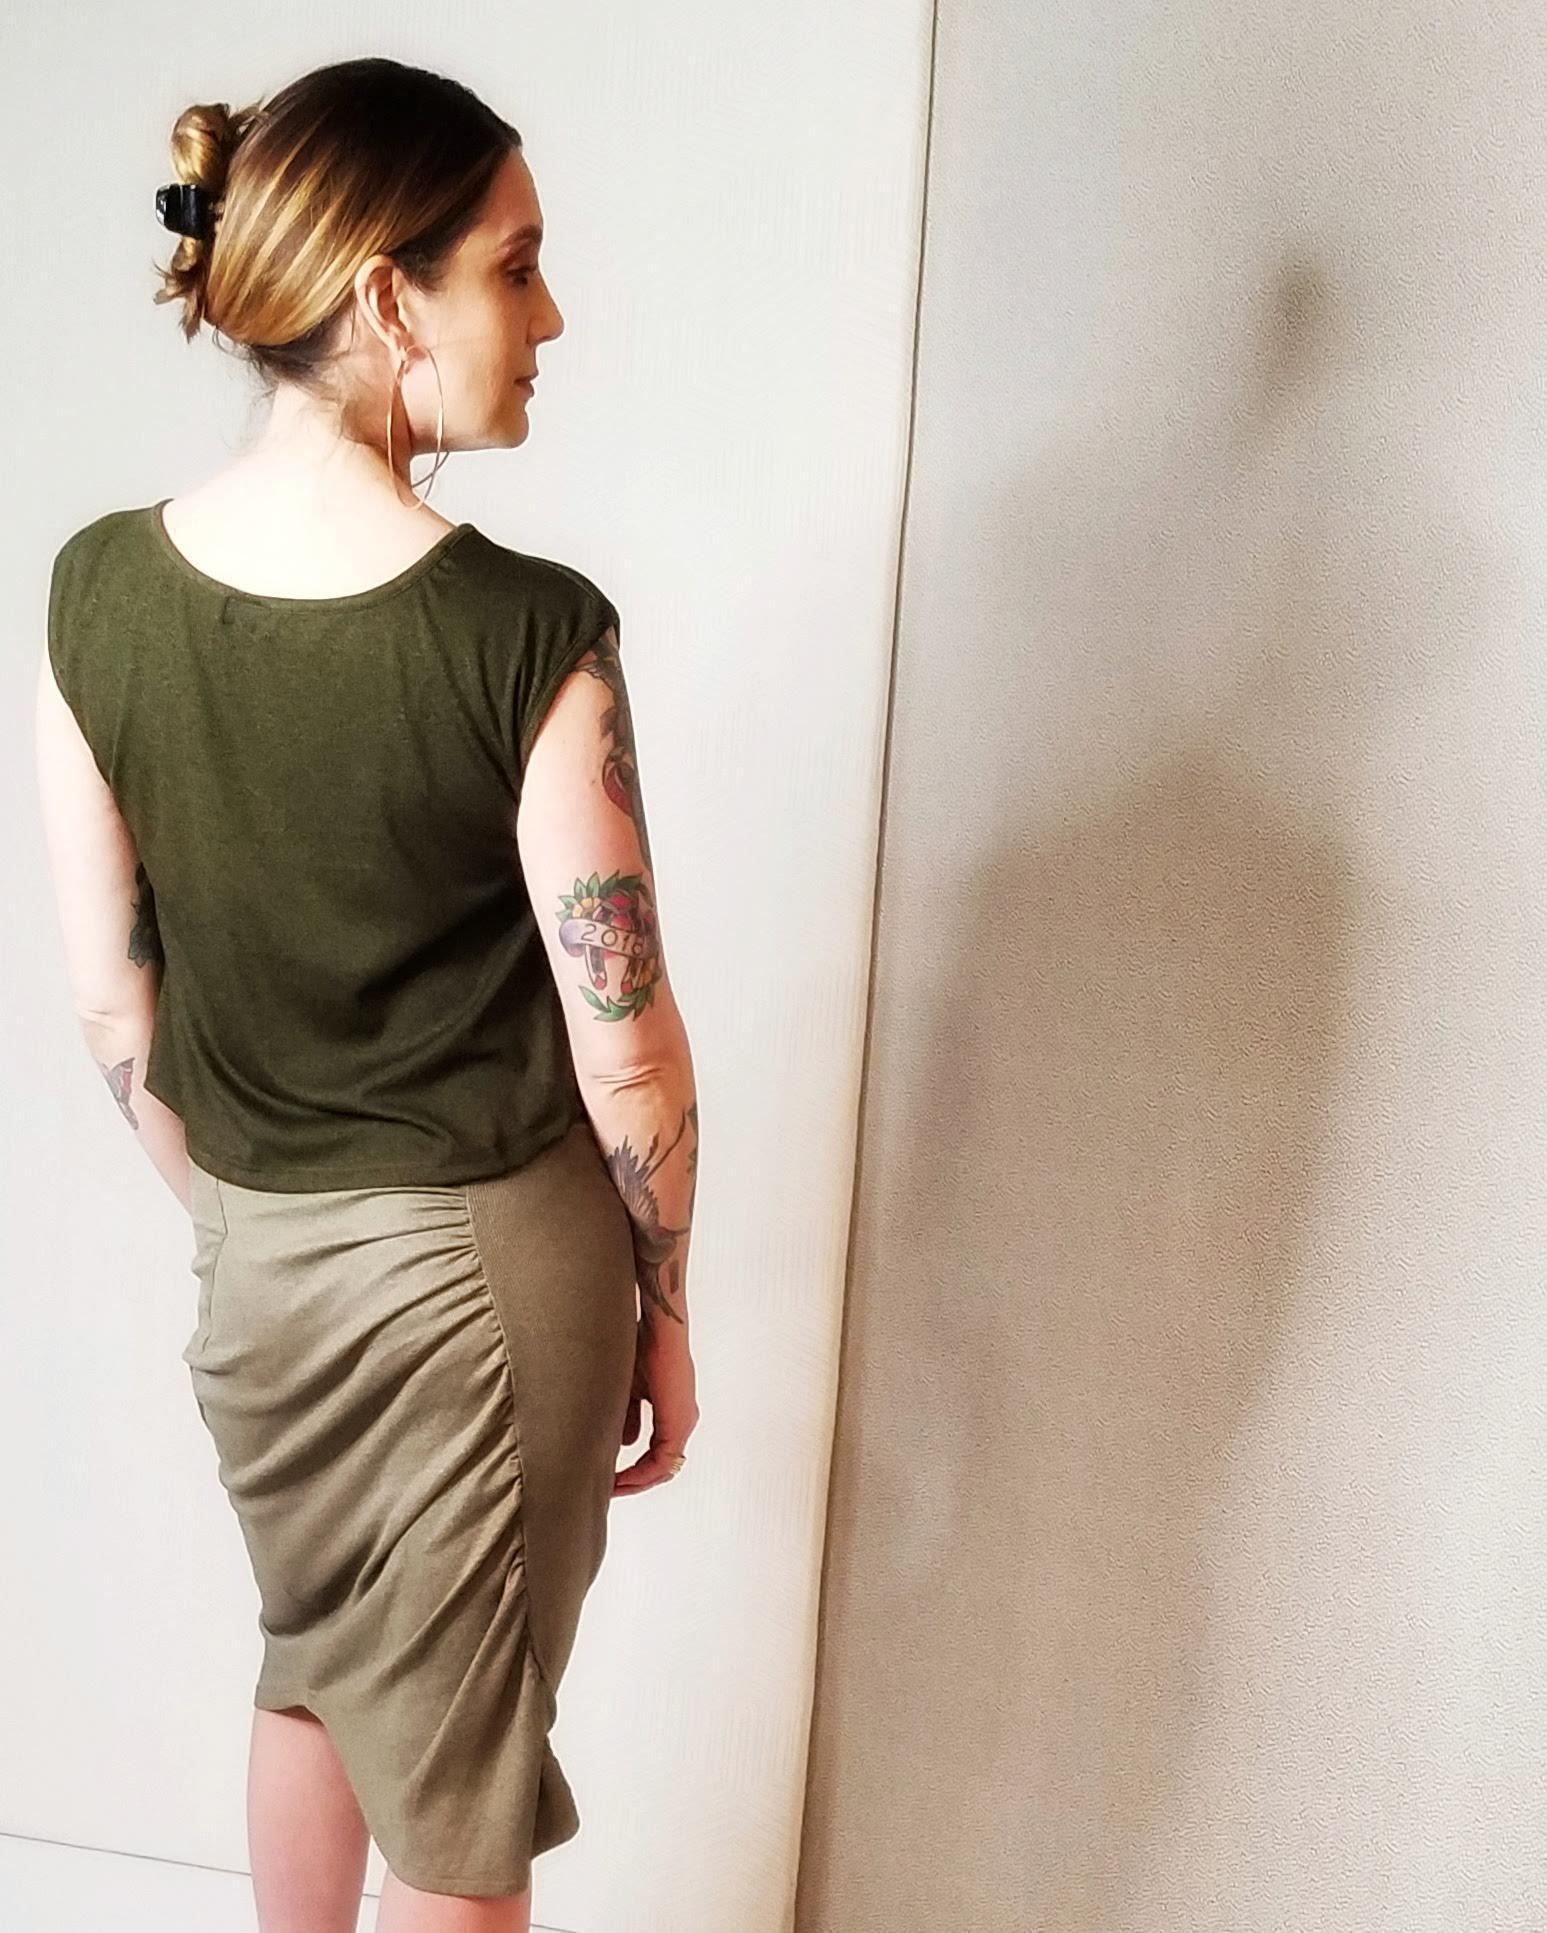 Squasht Croppish Tee - Dark Olive Green